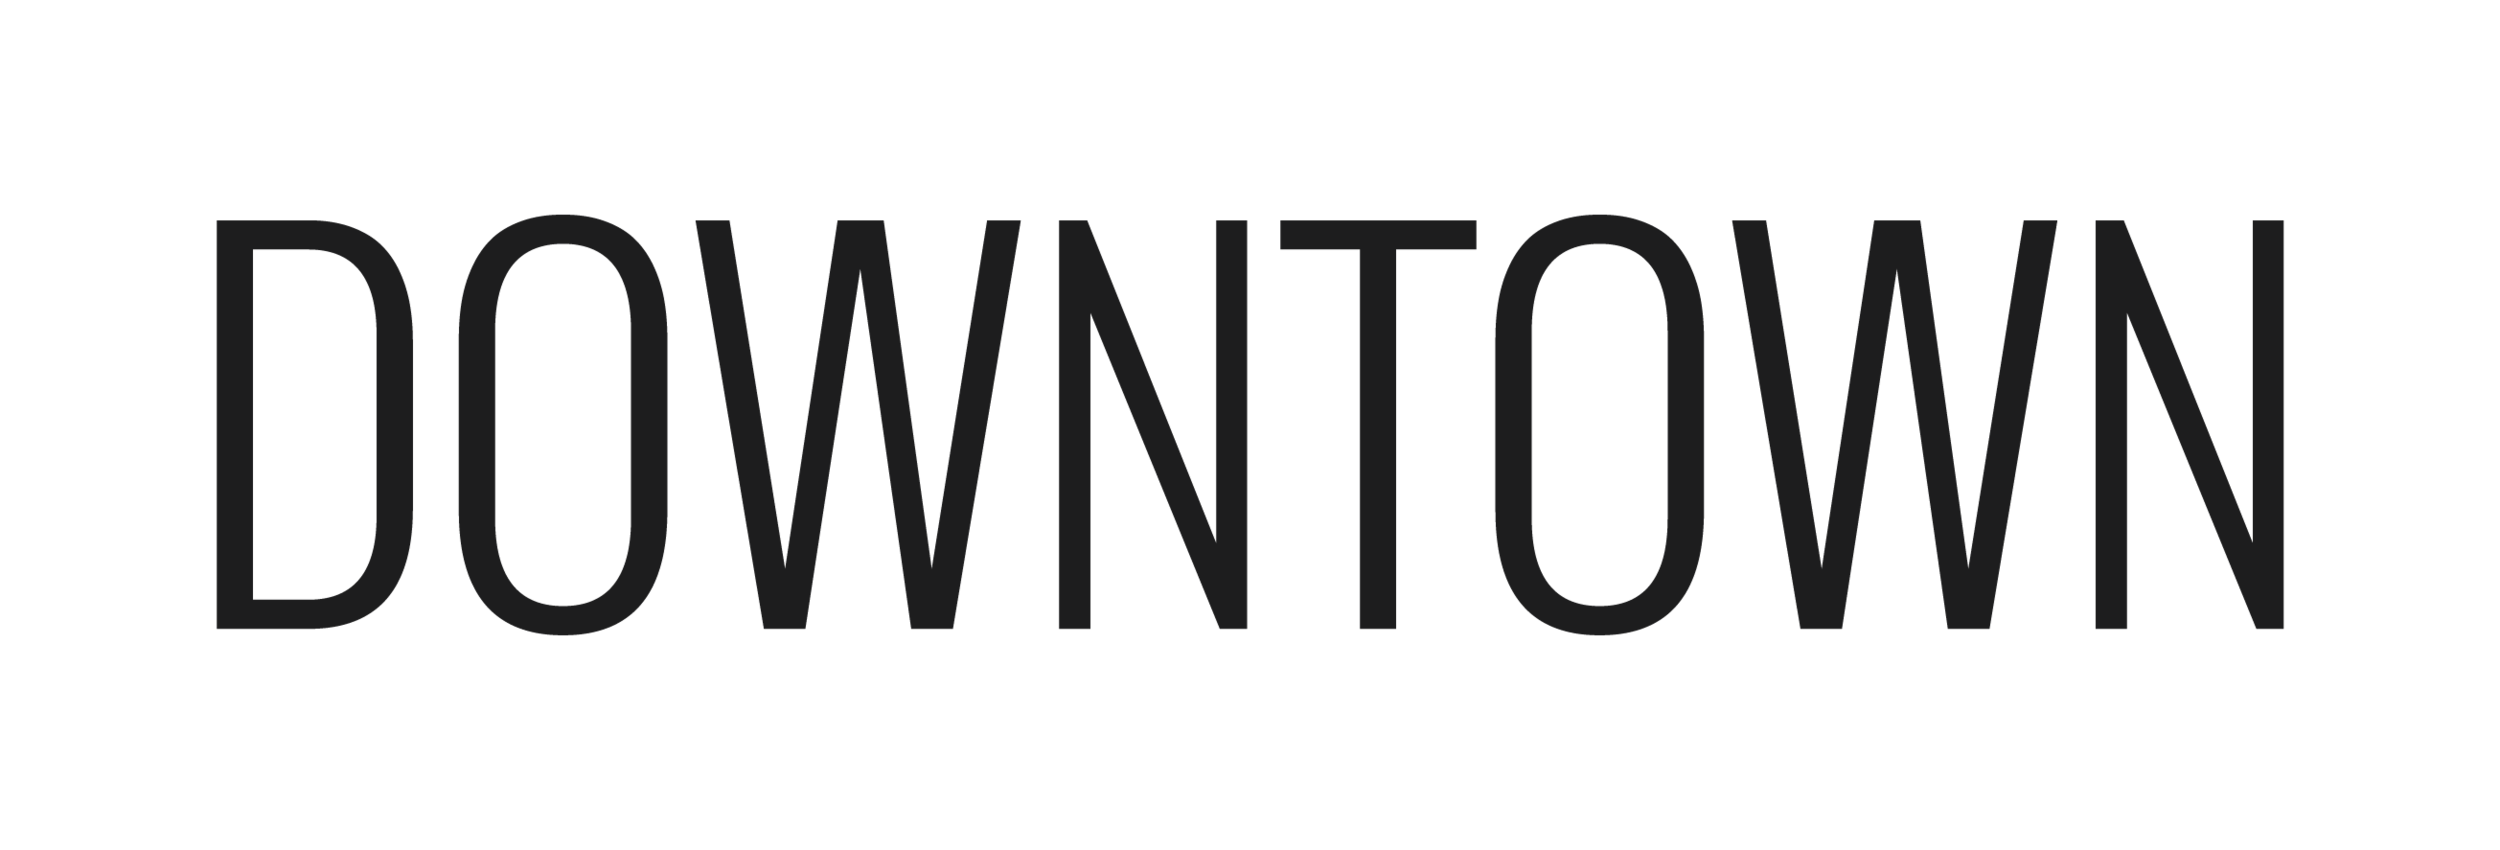 Downtown Logo - Outlined.png